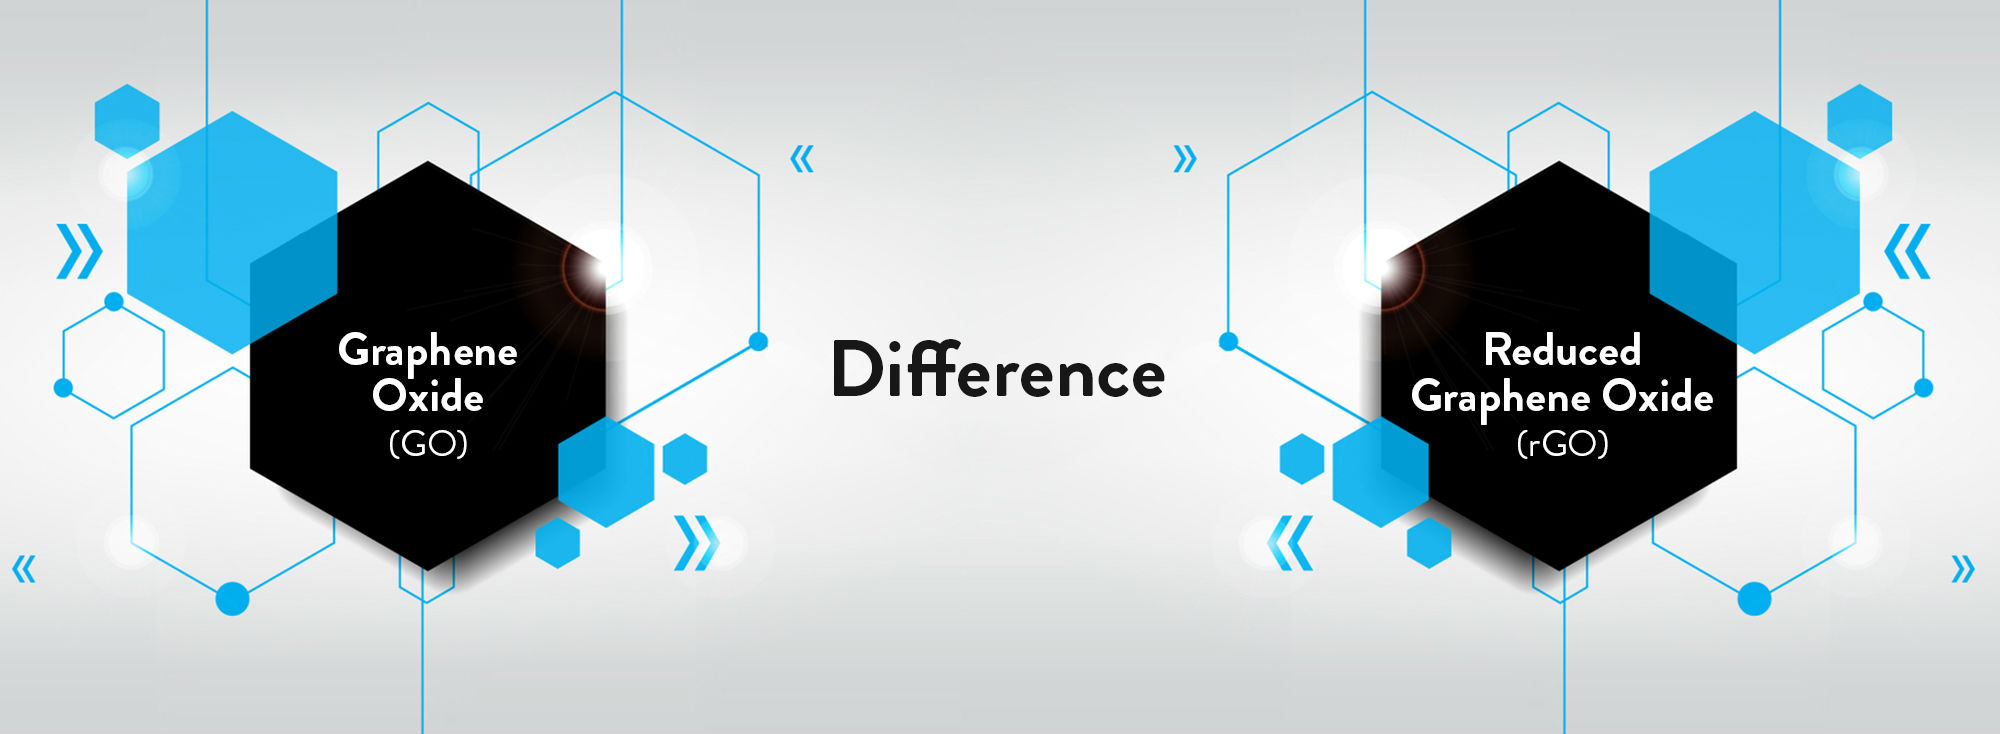 What Is the Difference Between Graphene Oxide (GO) And Reduced Graphene Oxide (rGO)? 1